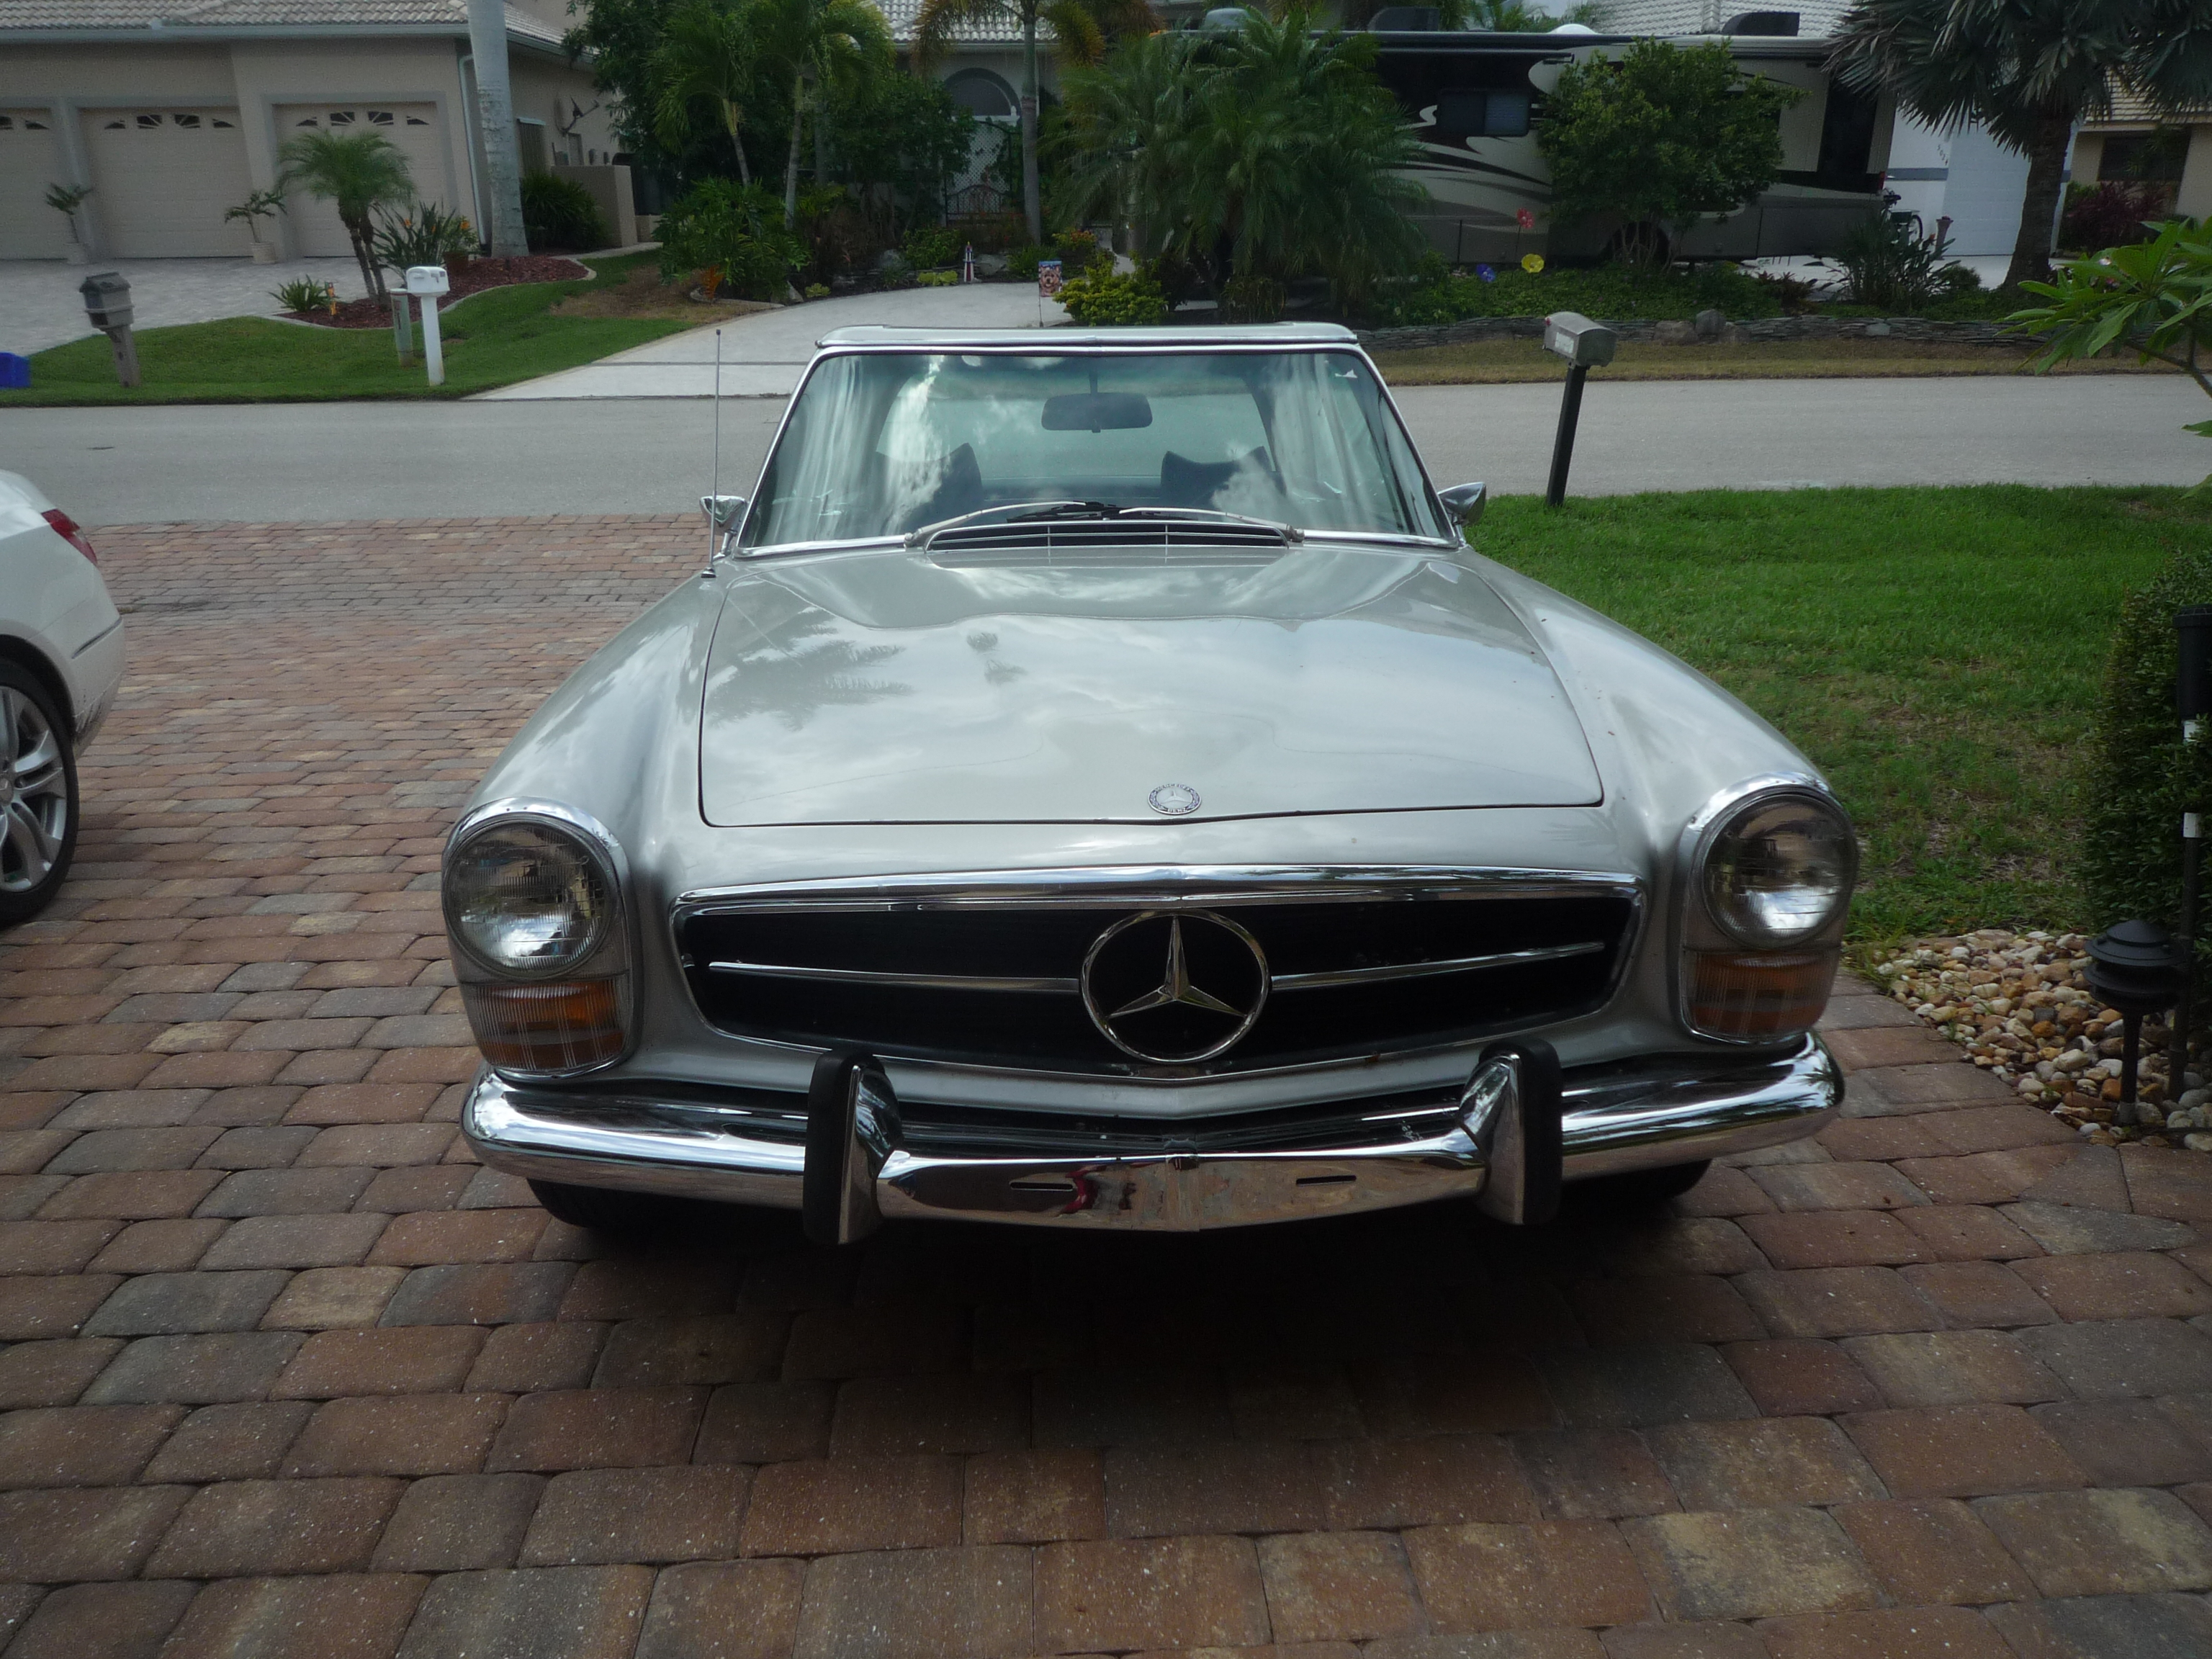 convertible bonhams wiki paris mercedes benz the for sale file